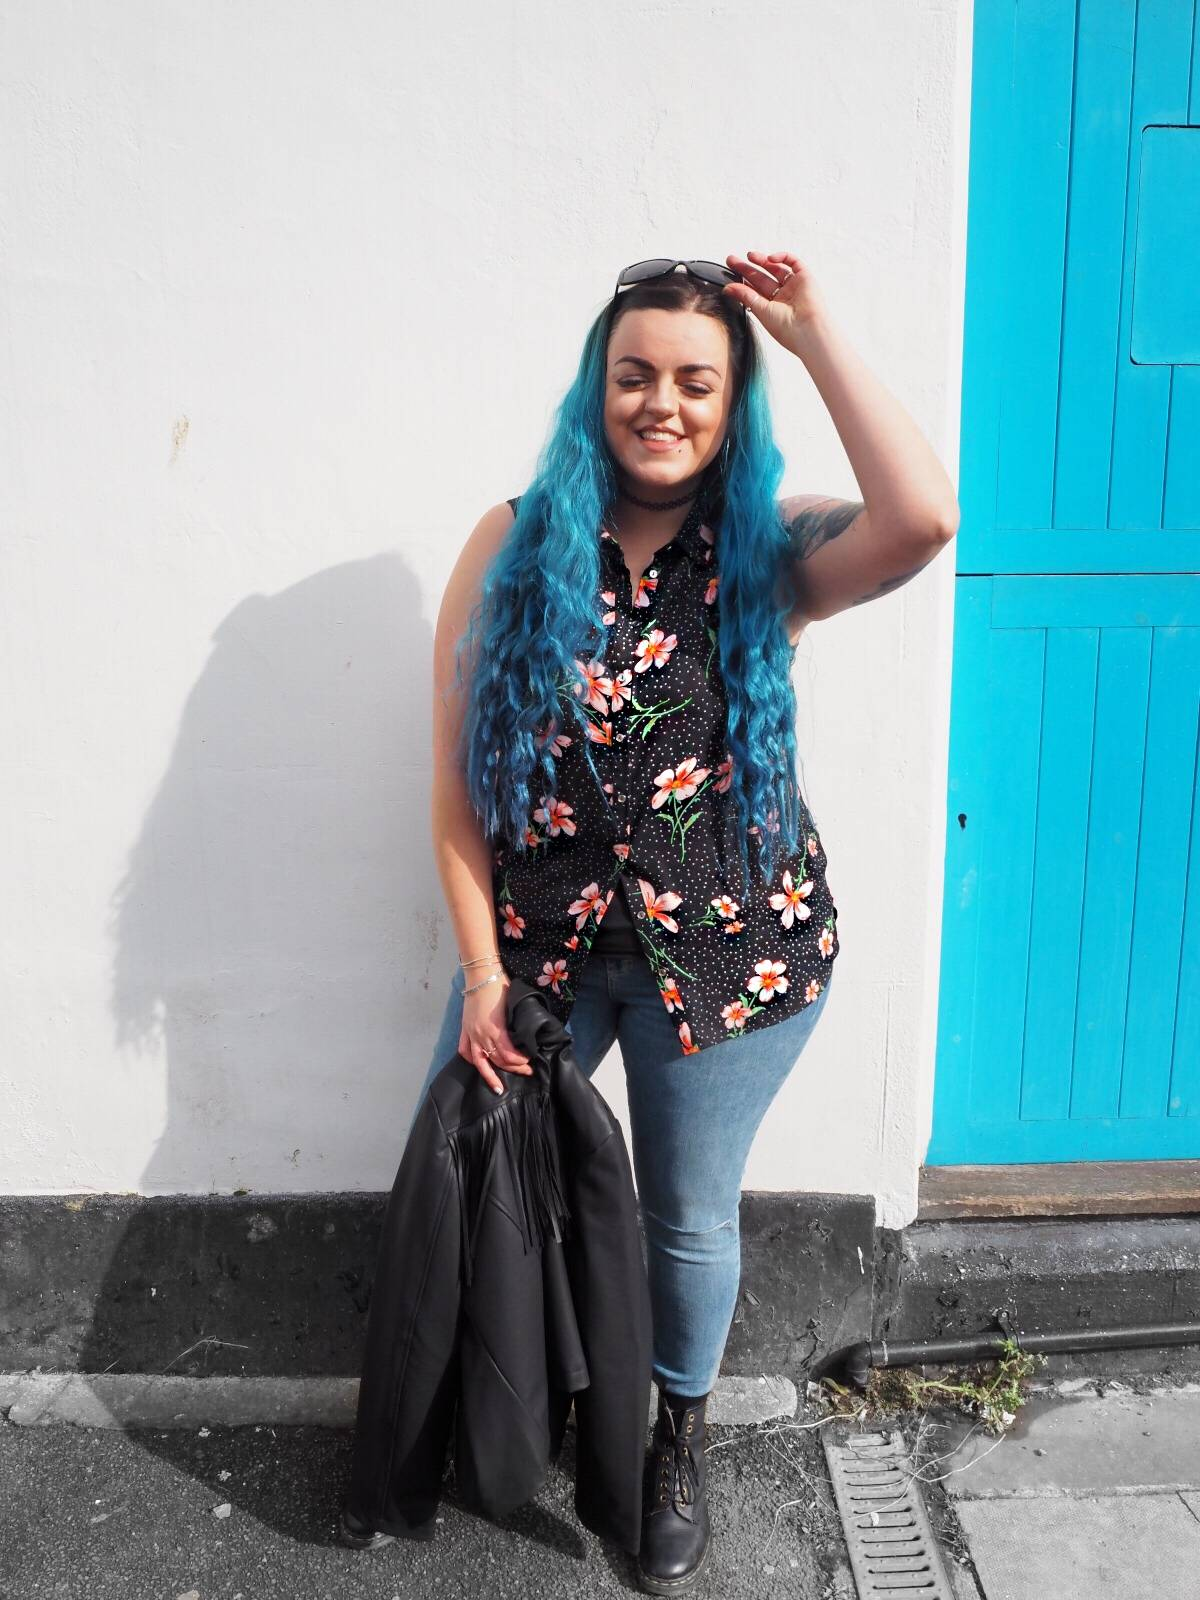 George at Asda plus size fashion inclusive accessible afforable